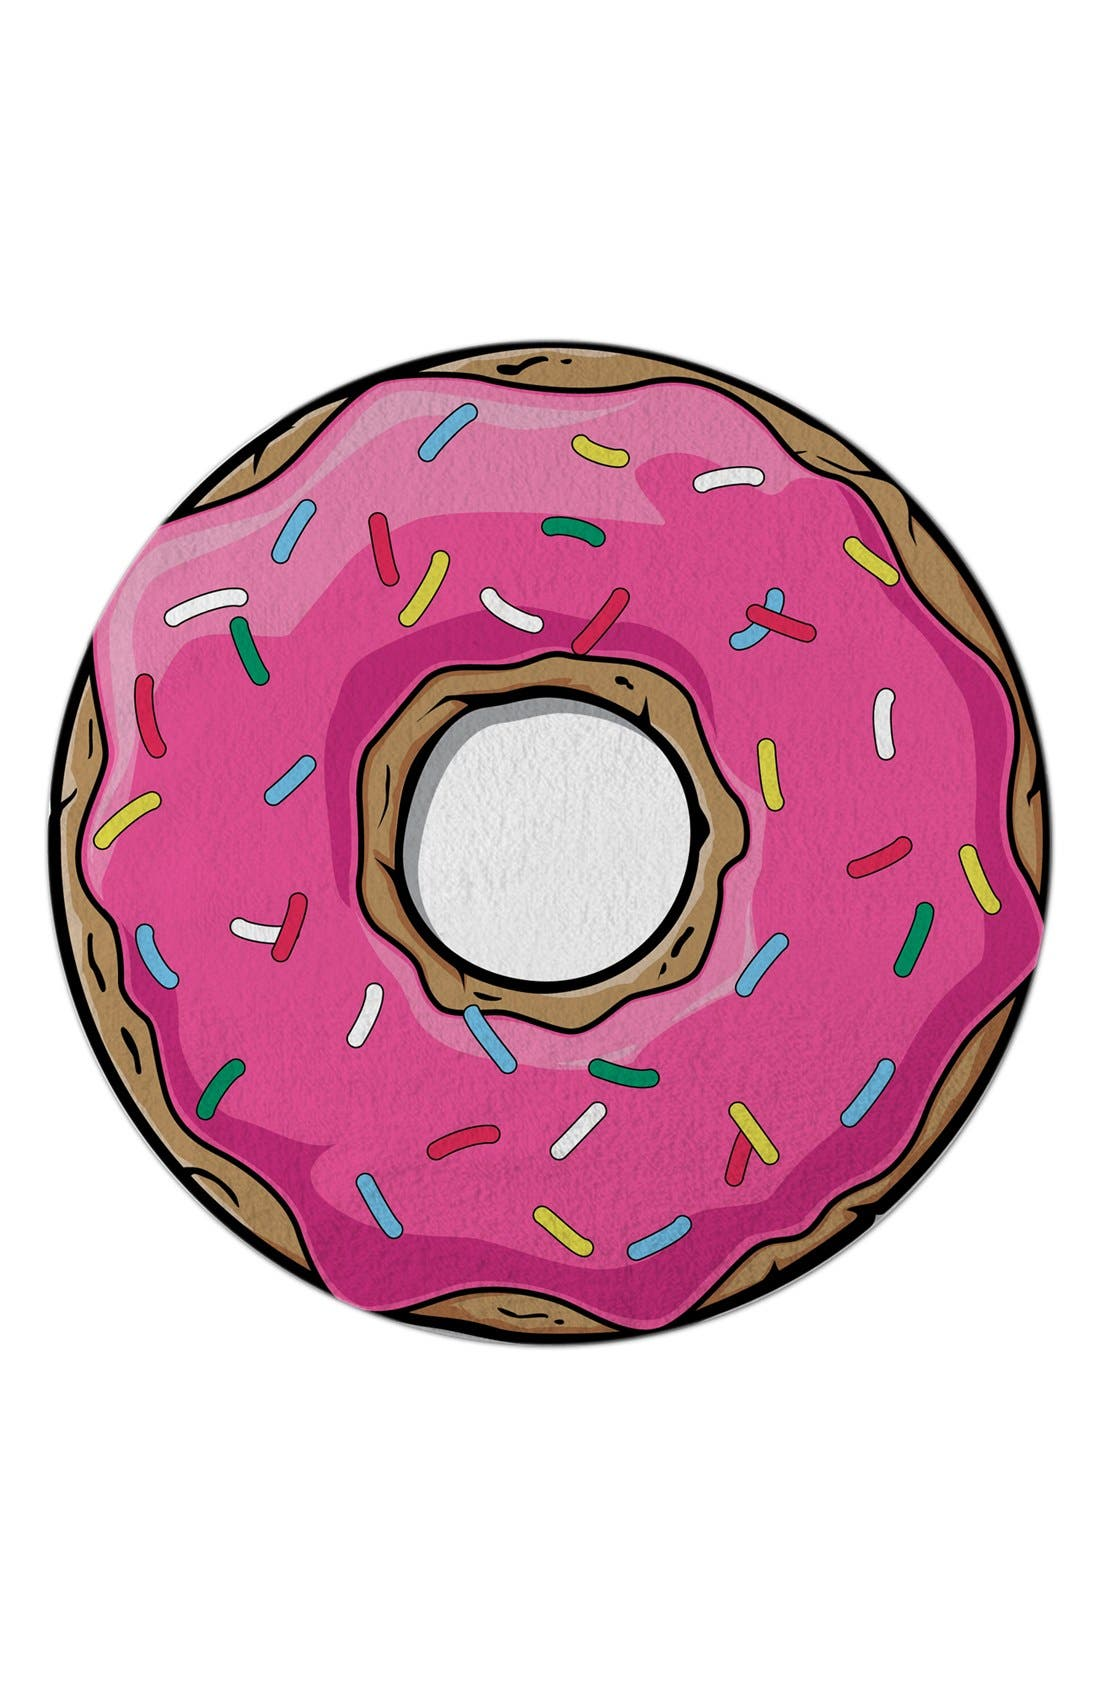 ROUND TOWEL CO.,                             Donut Round Beach Towel,                             Main thumbnail 1, color,                             650